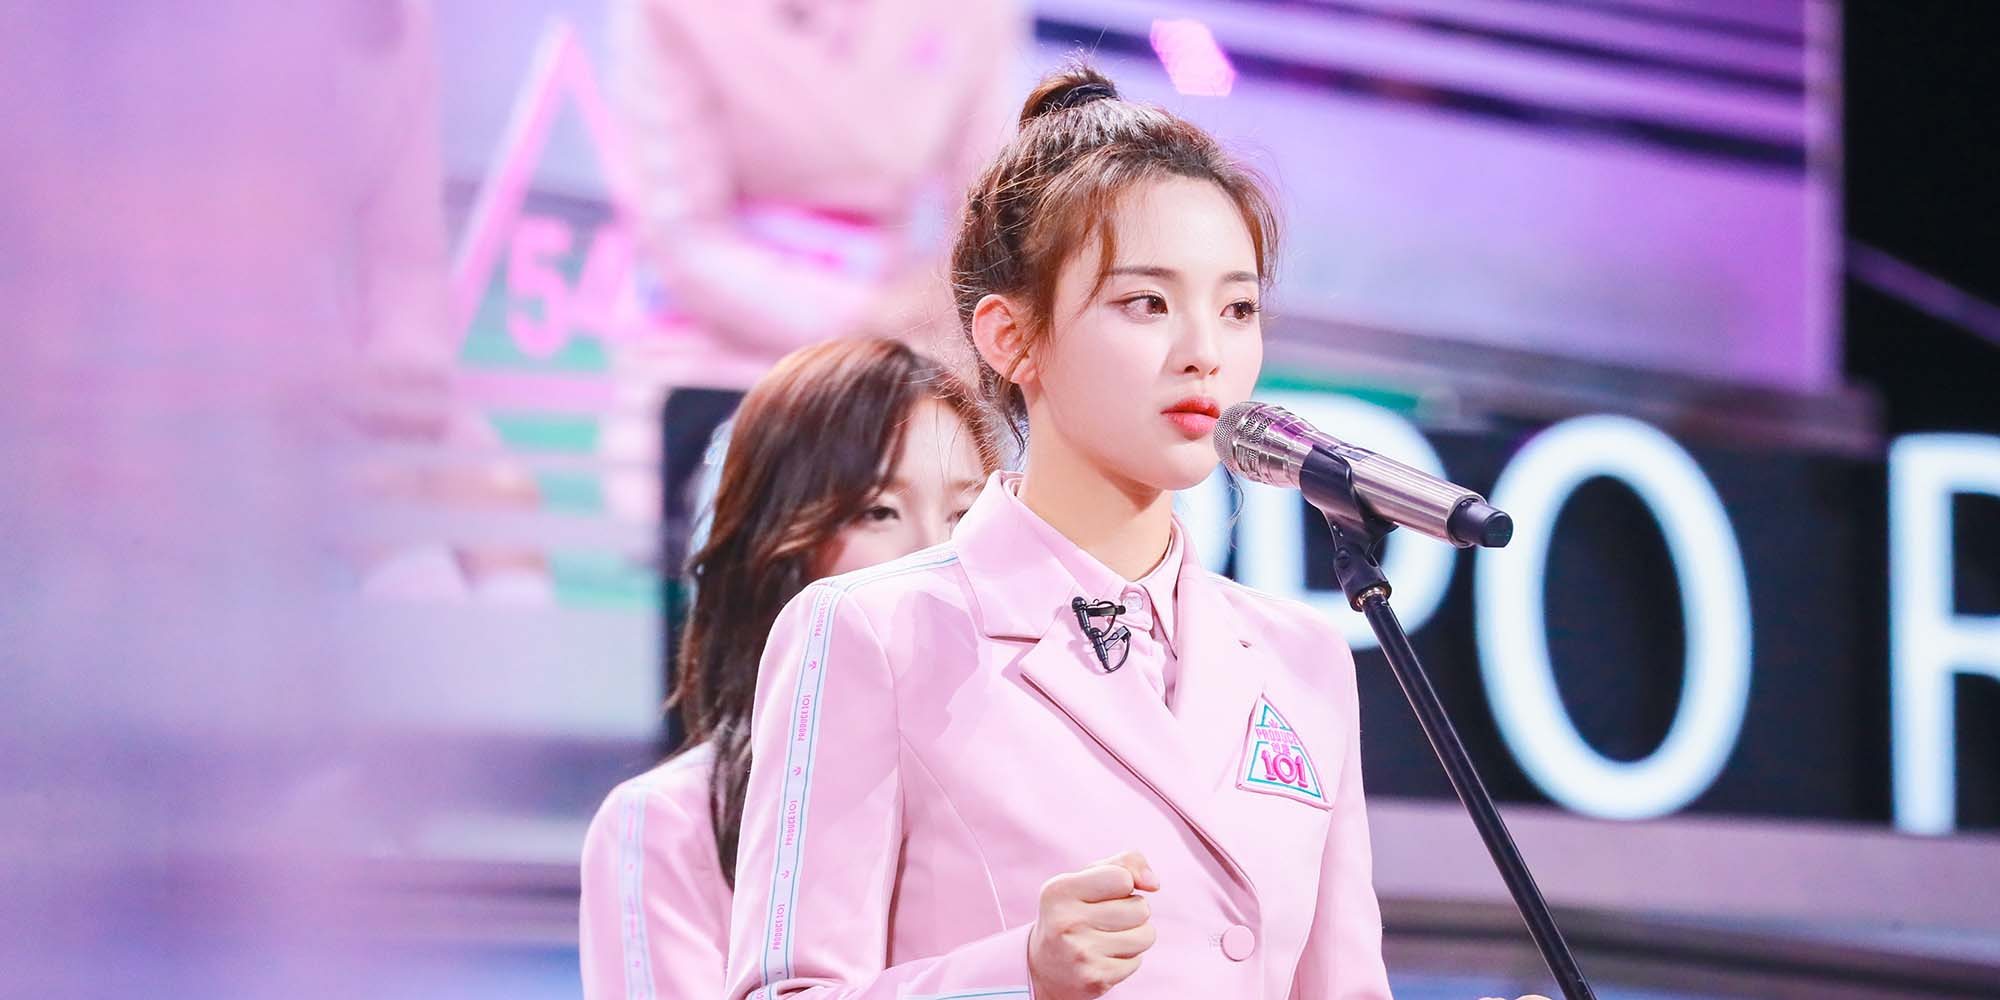 Chinese Netizens Divided Over Singing Cinderella